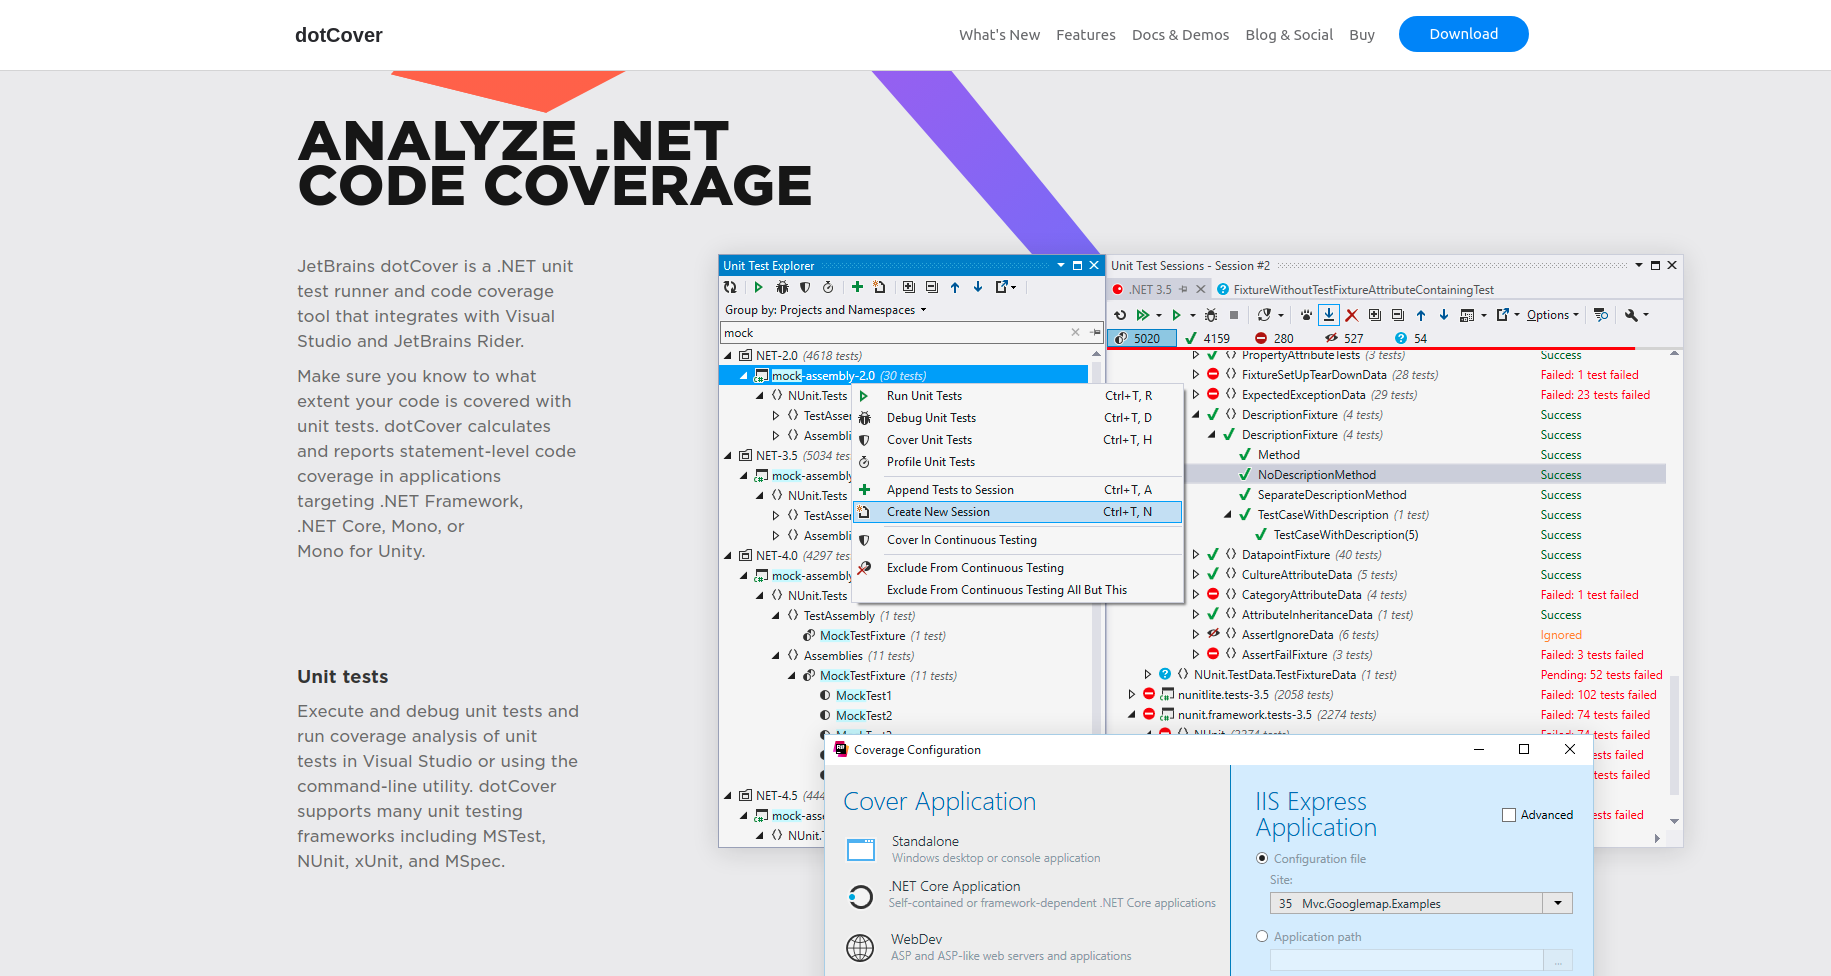 DotCover tool homepage